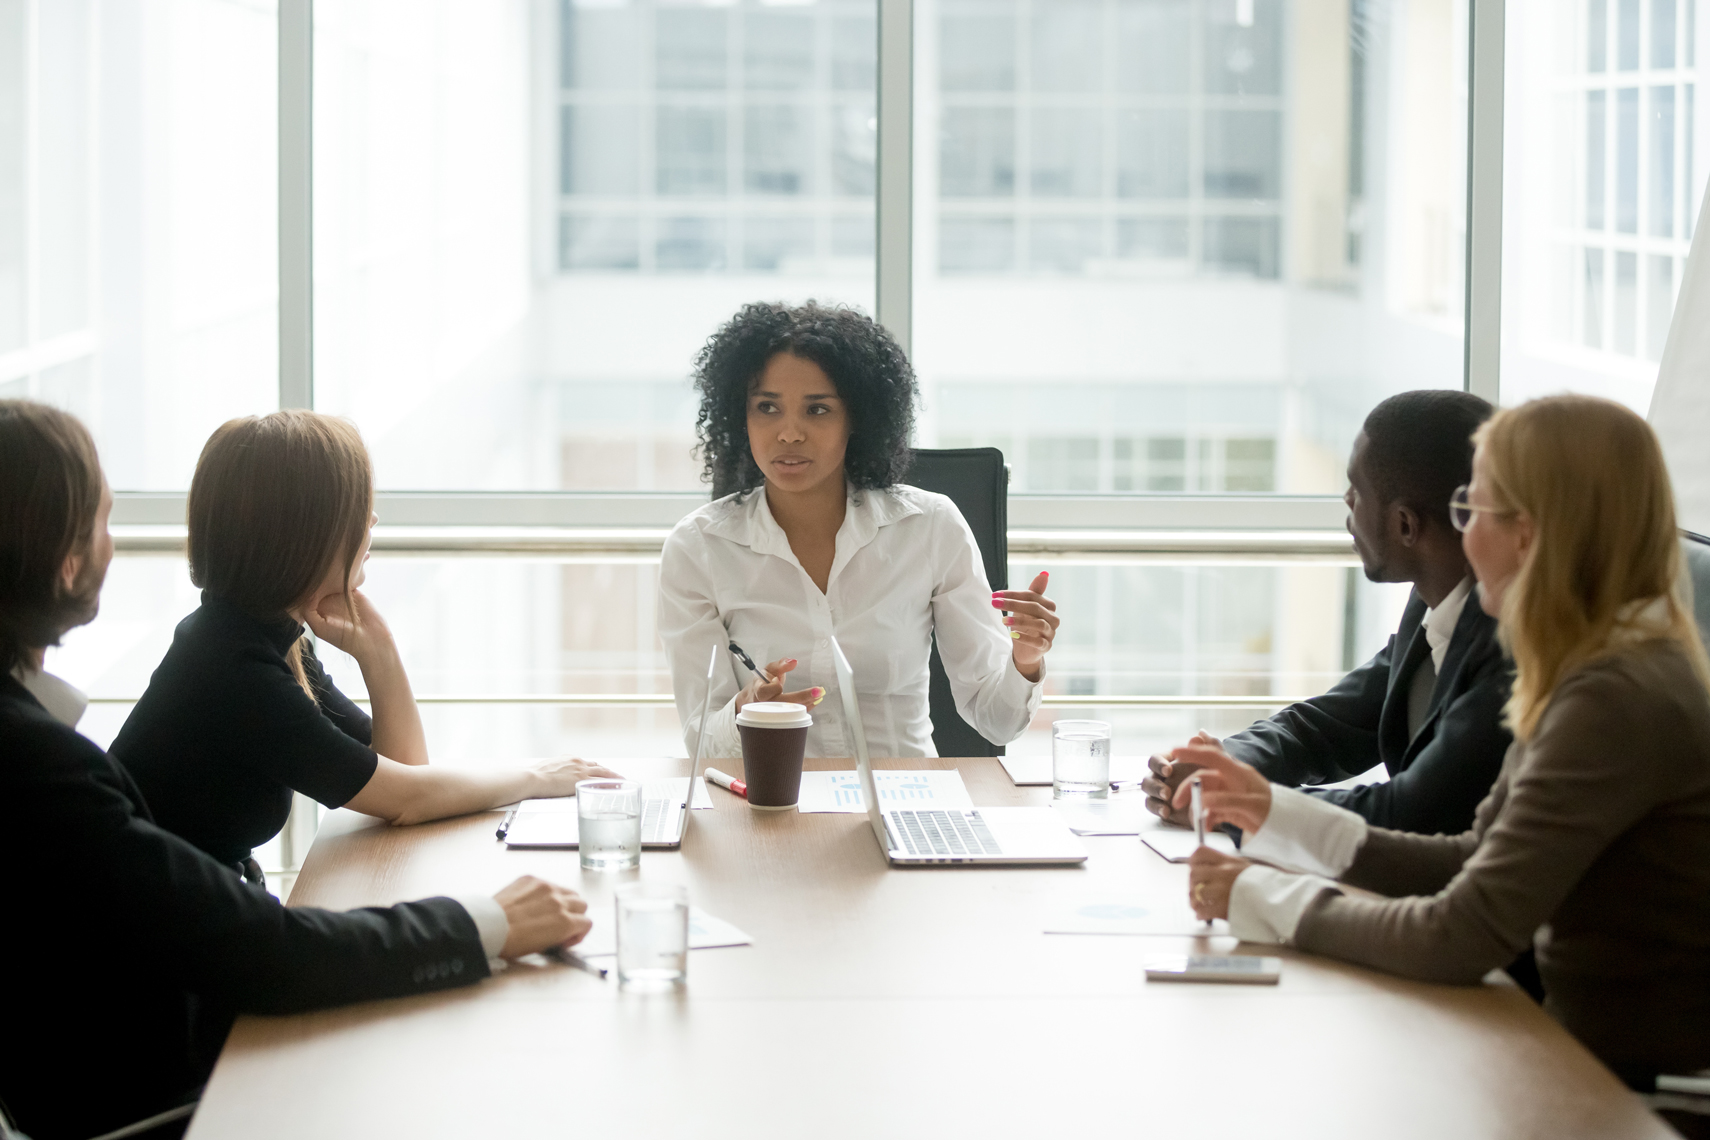 Multiracial business people talking, sitting at office boardroom table.